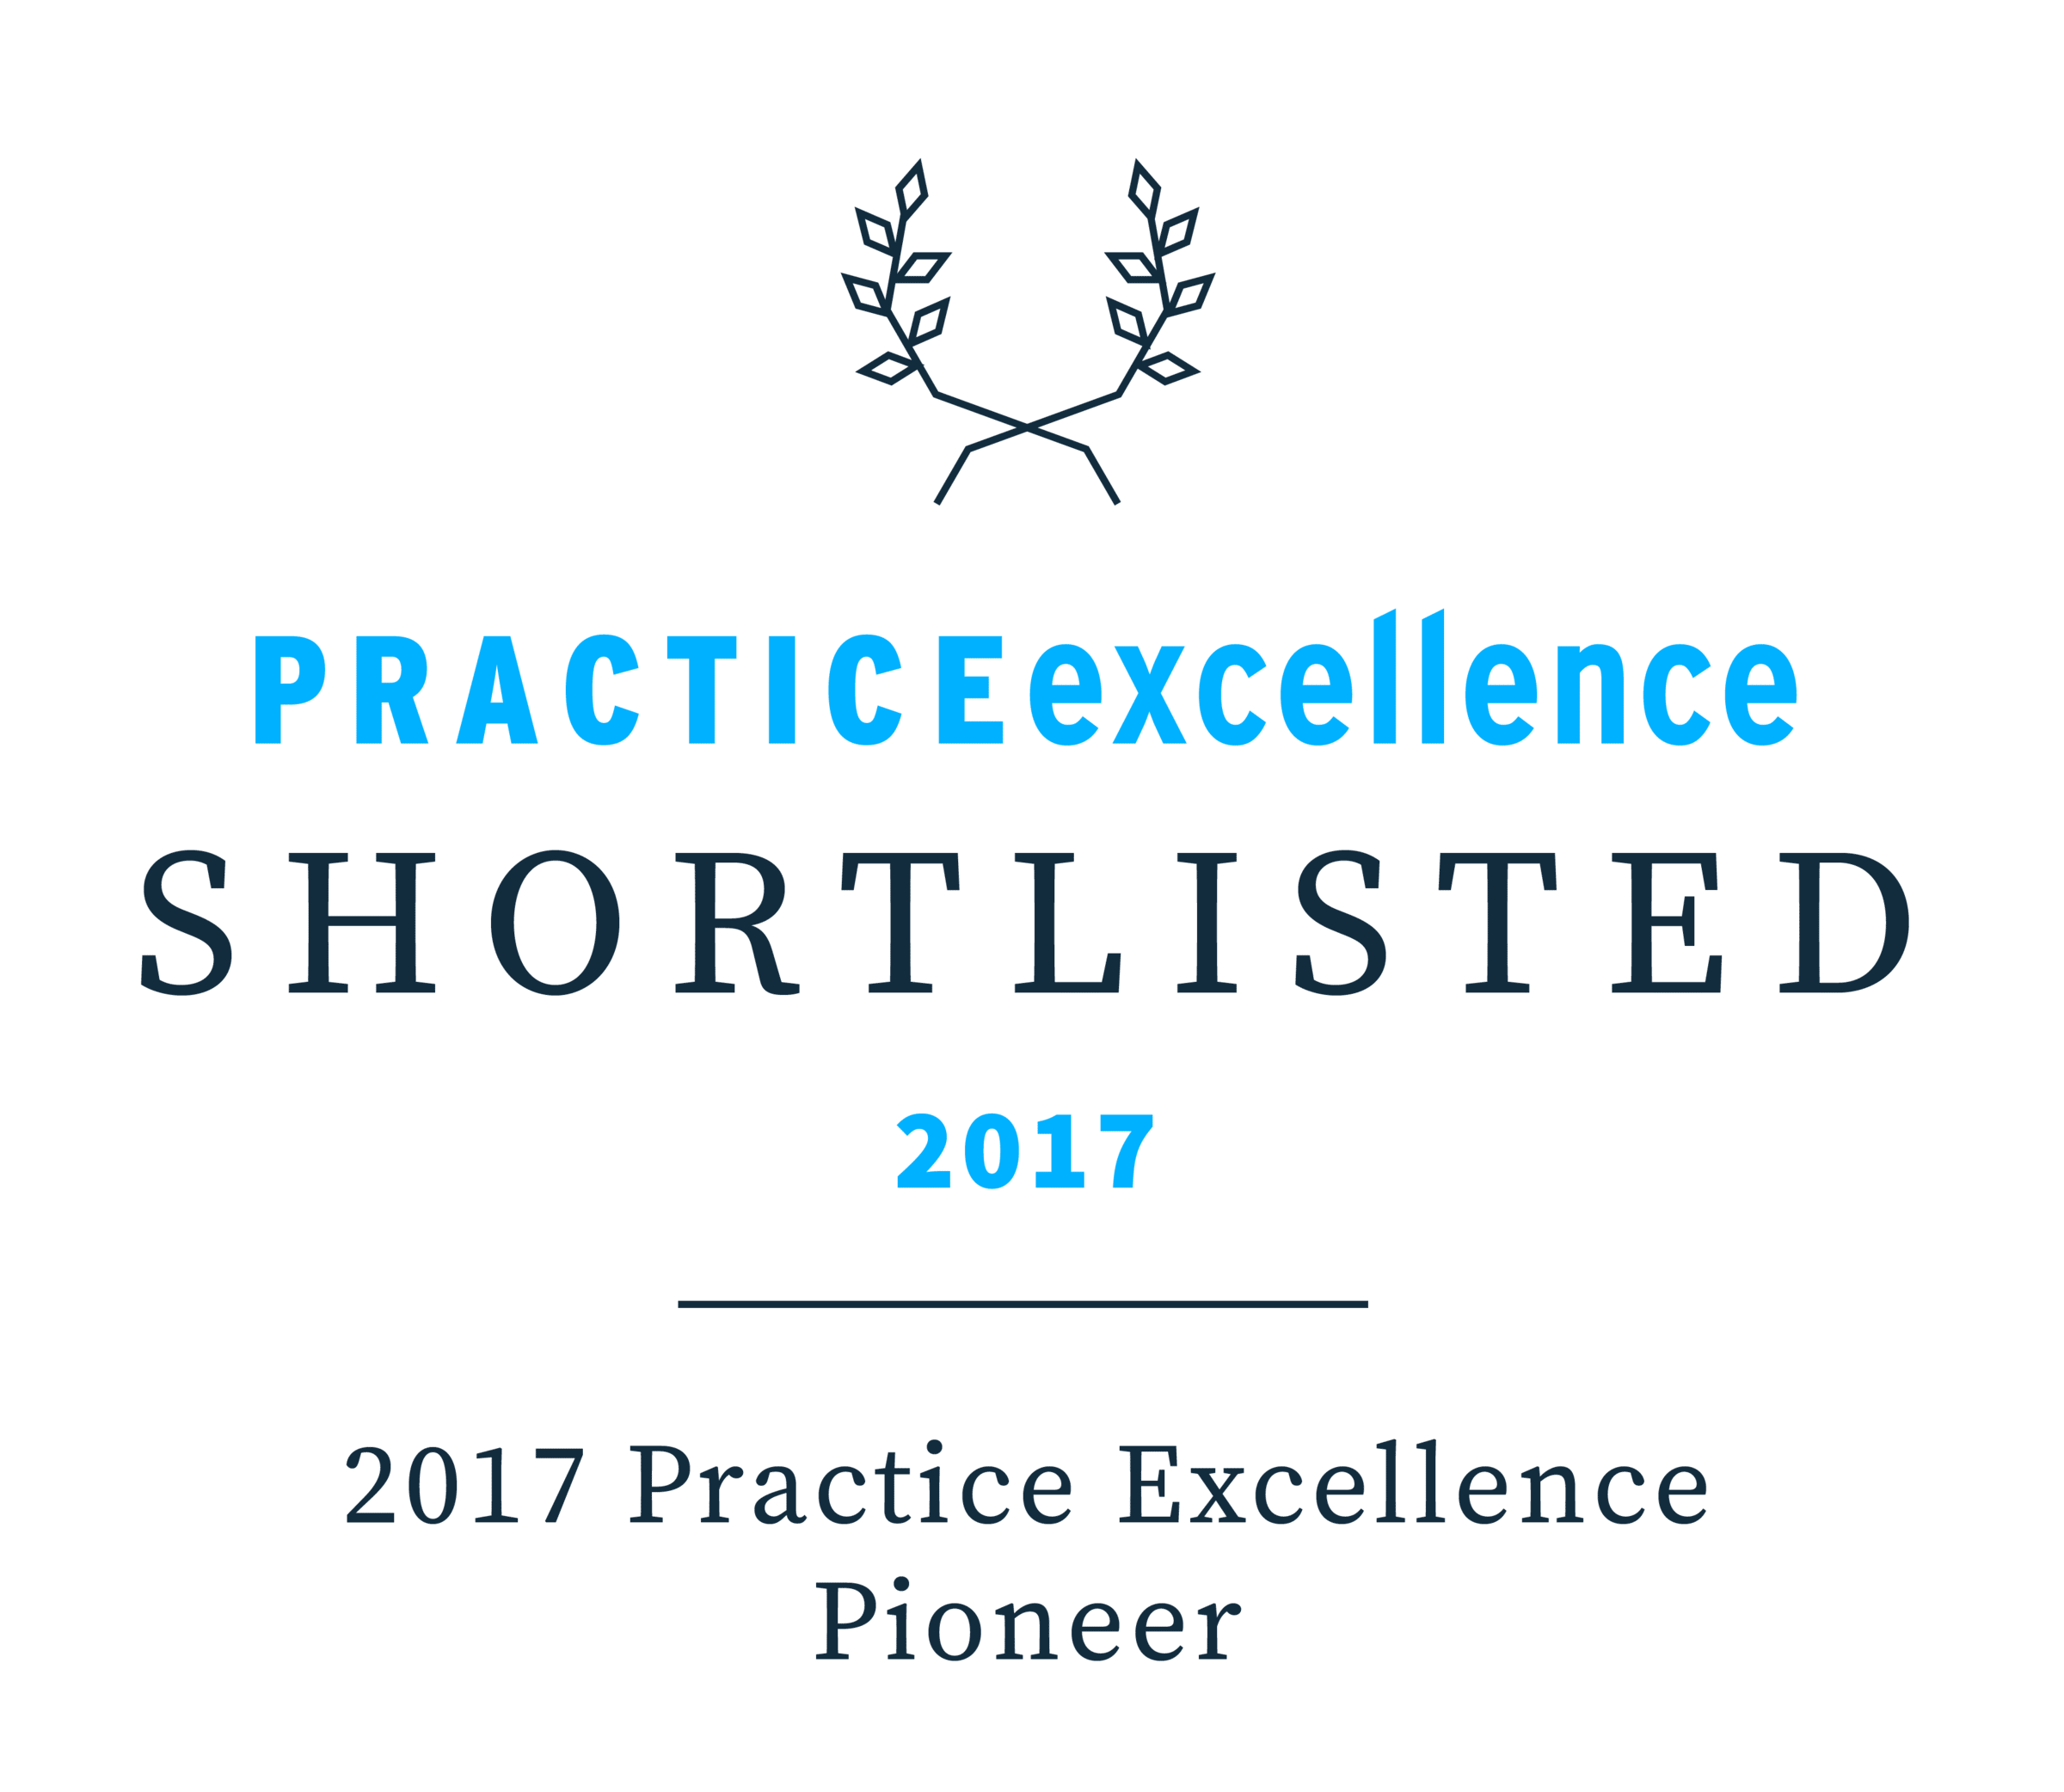 Practice Excellence Awards - Shortlisted 2017